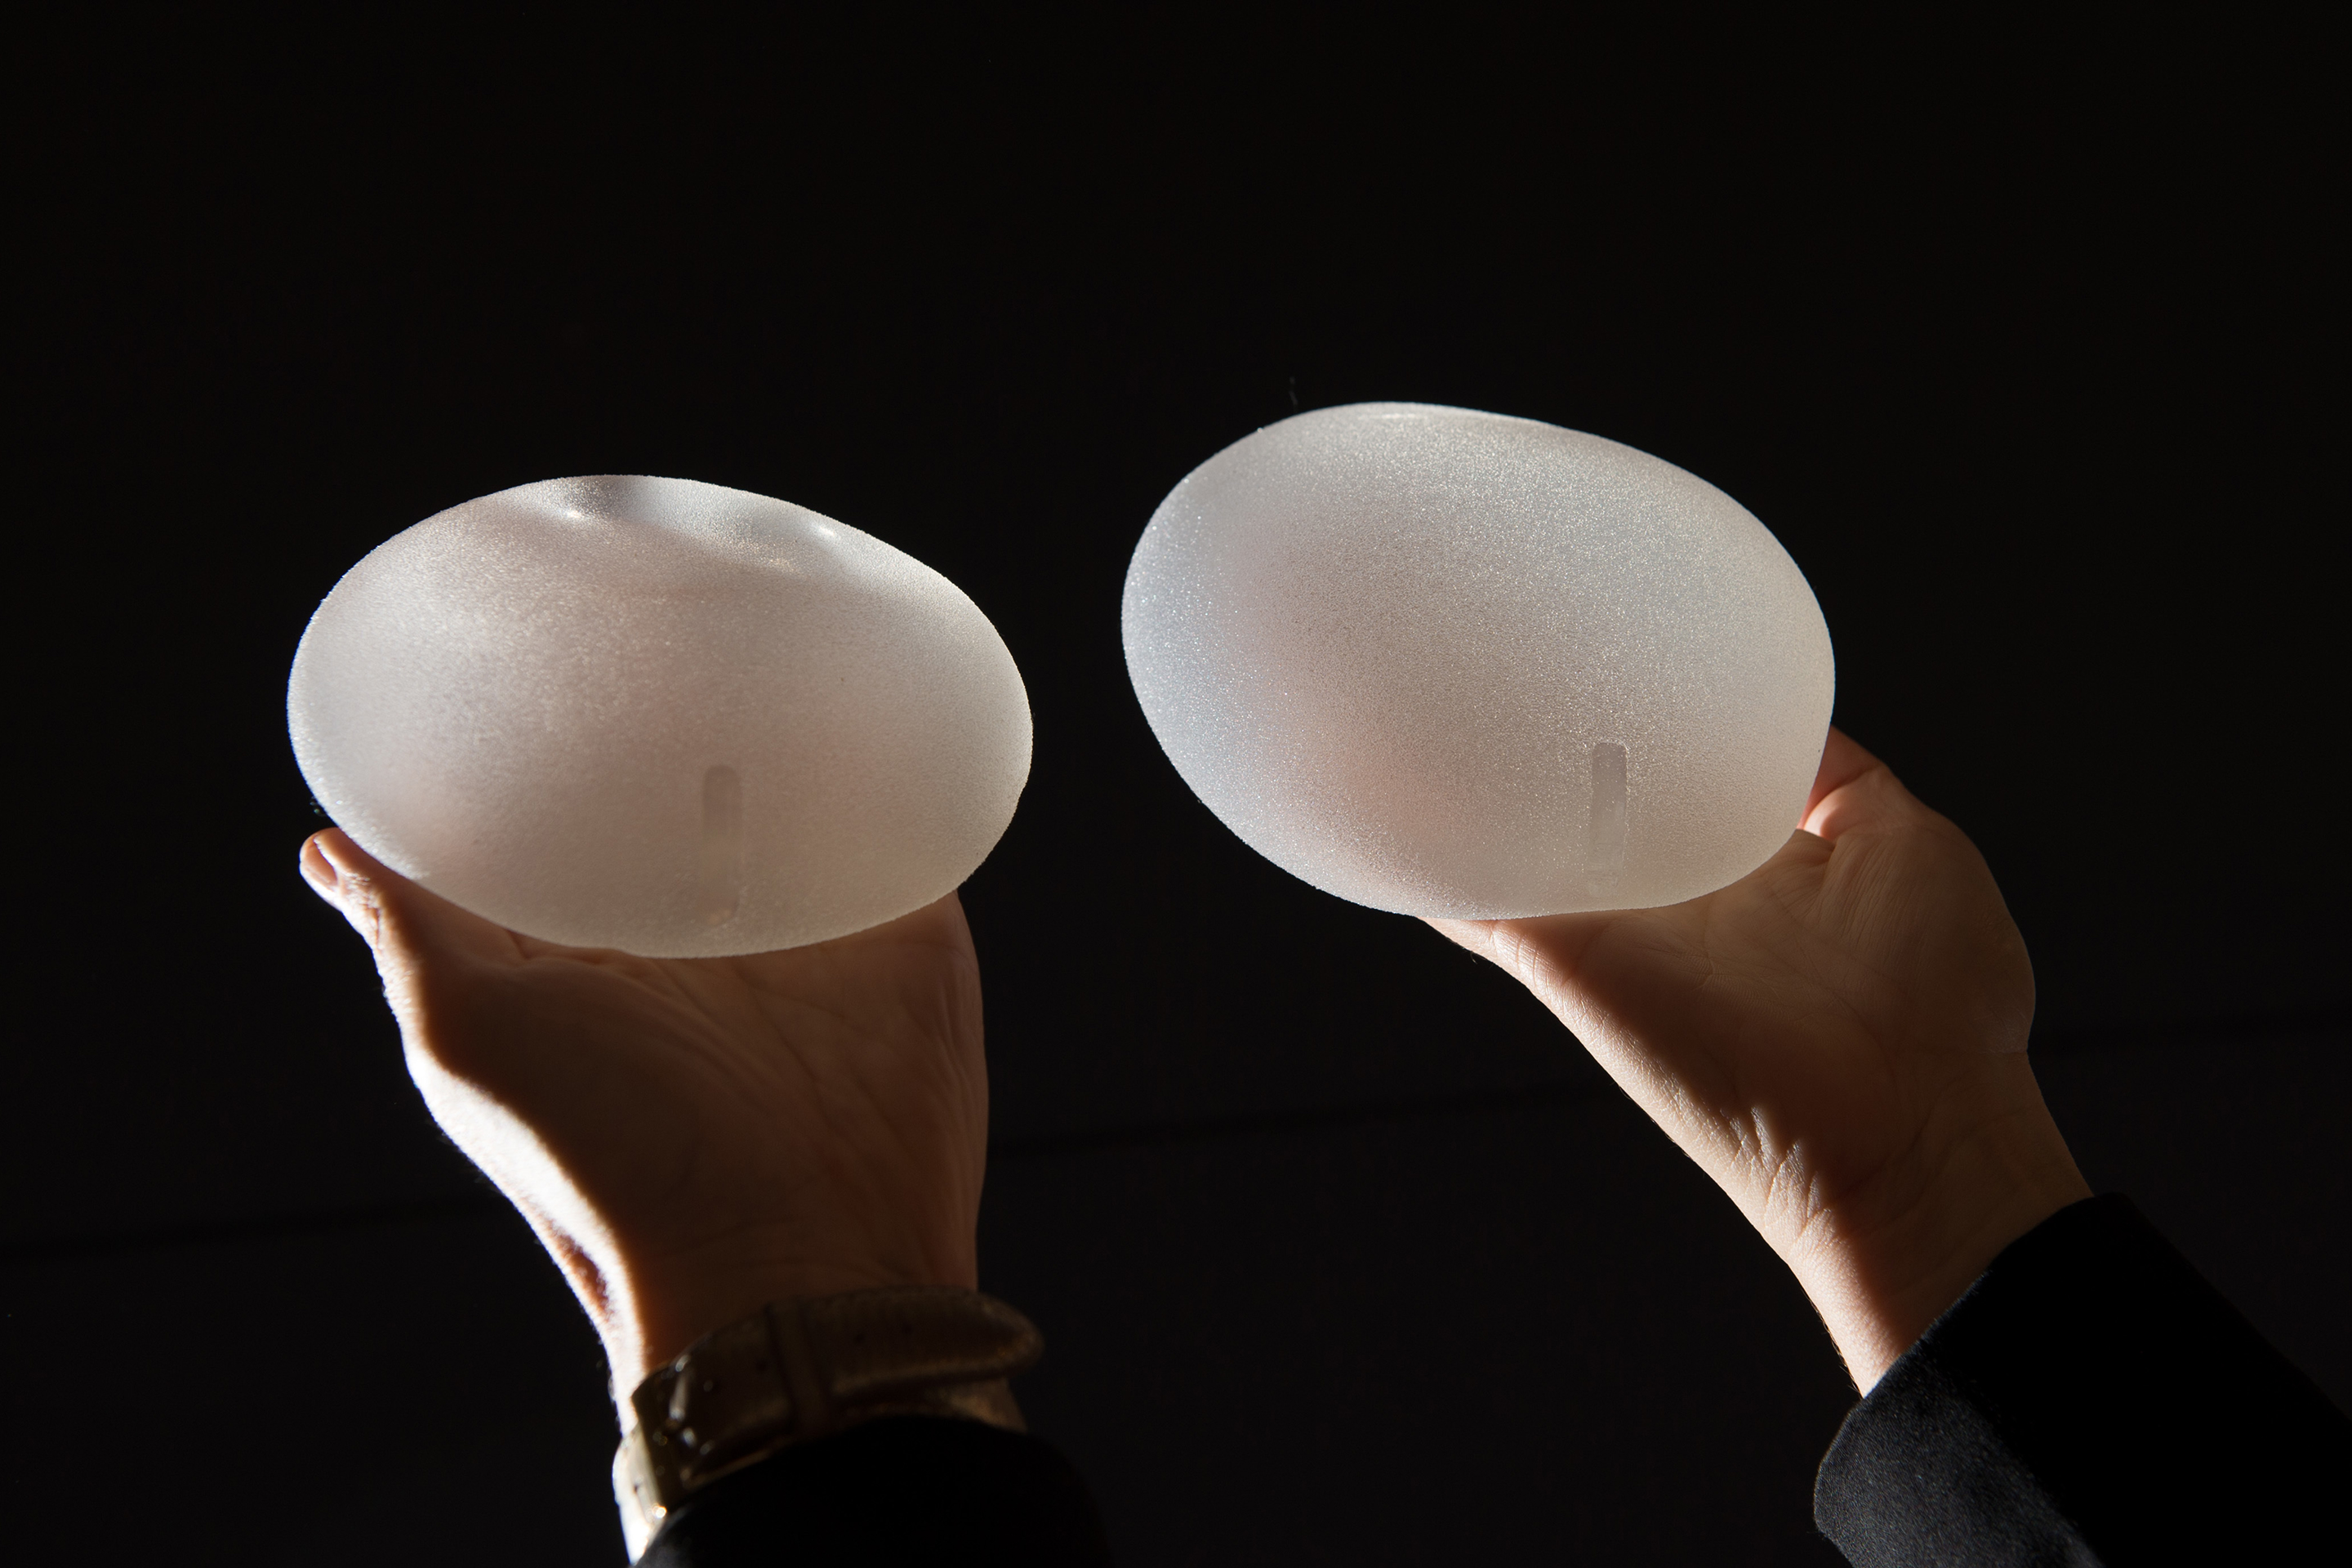 FDA Breast Implants